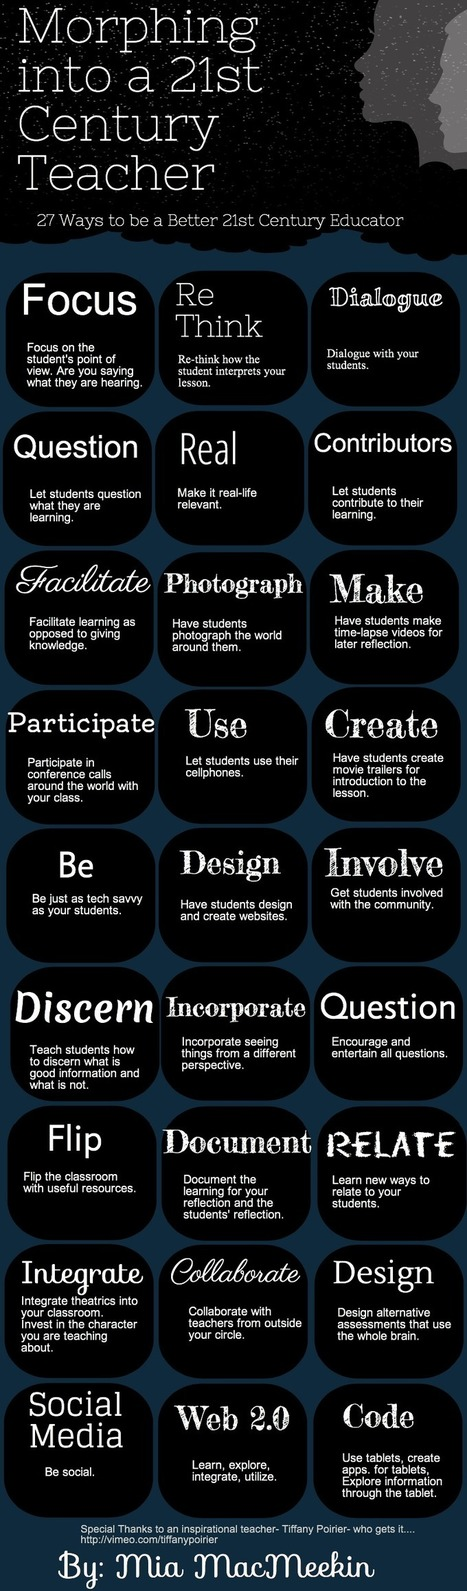 27 Ways To Be A 21st Century Teacher - Edudemic | Education and Technology Hand in Hand | Scoop.it